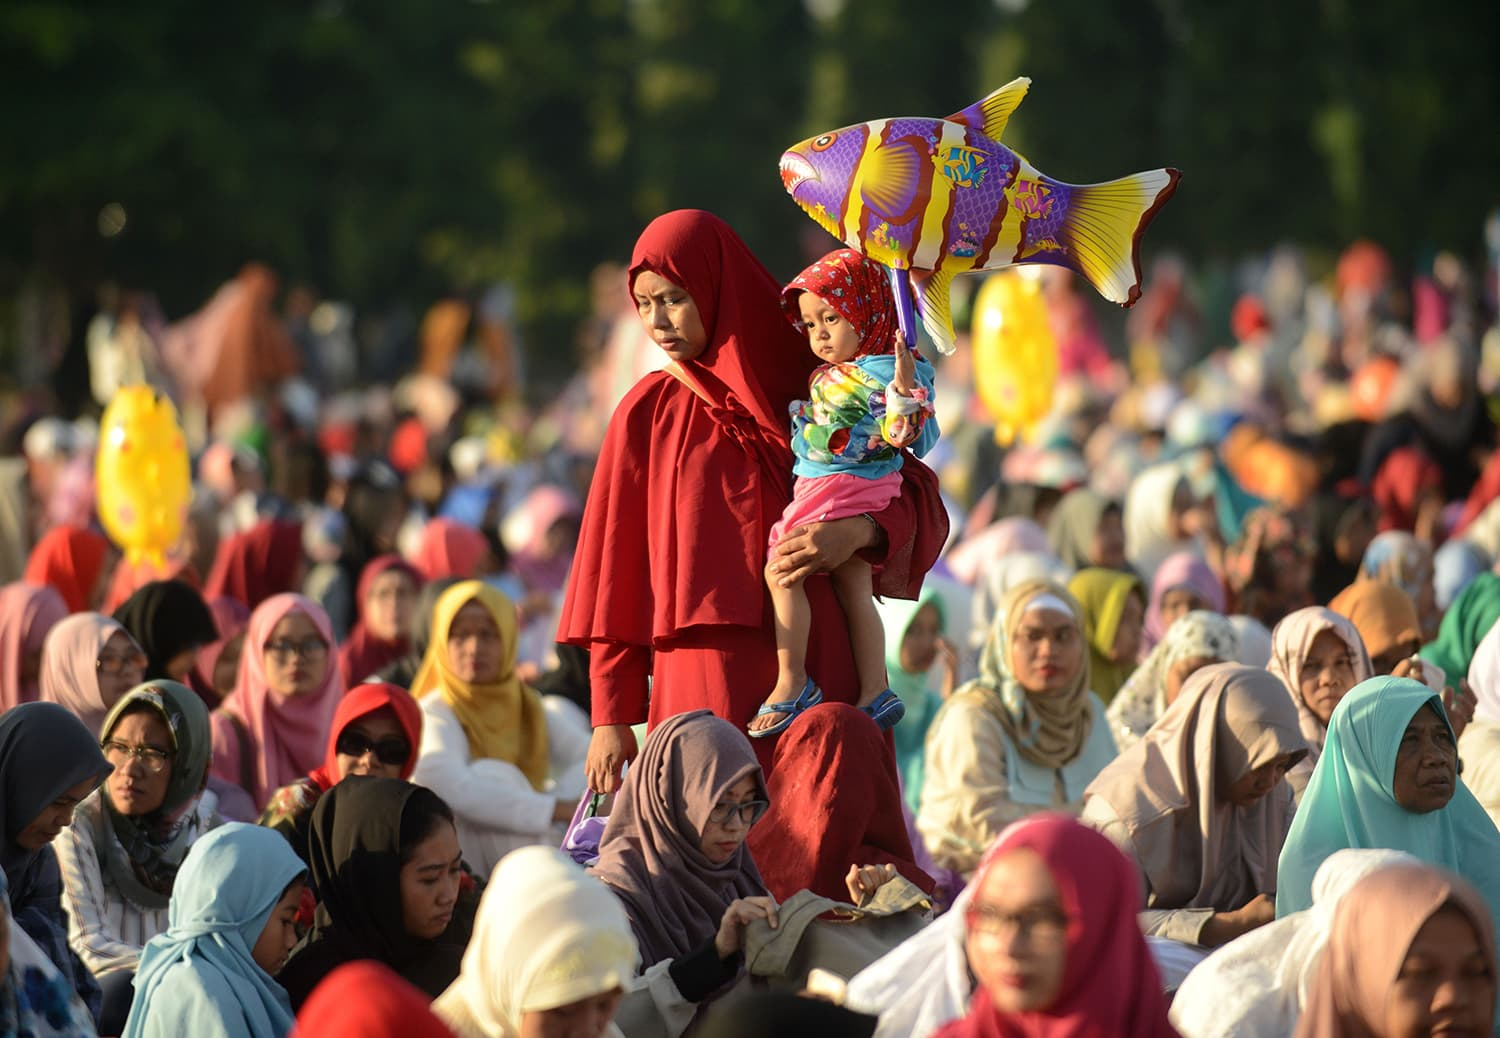 Indonesia Muslim people take part in a special morning prayer celebrating Eid festival at Bali's Bajra Sandhi monument and park in Denpasar. — AFP